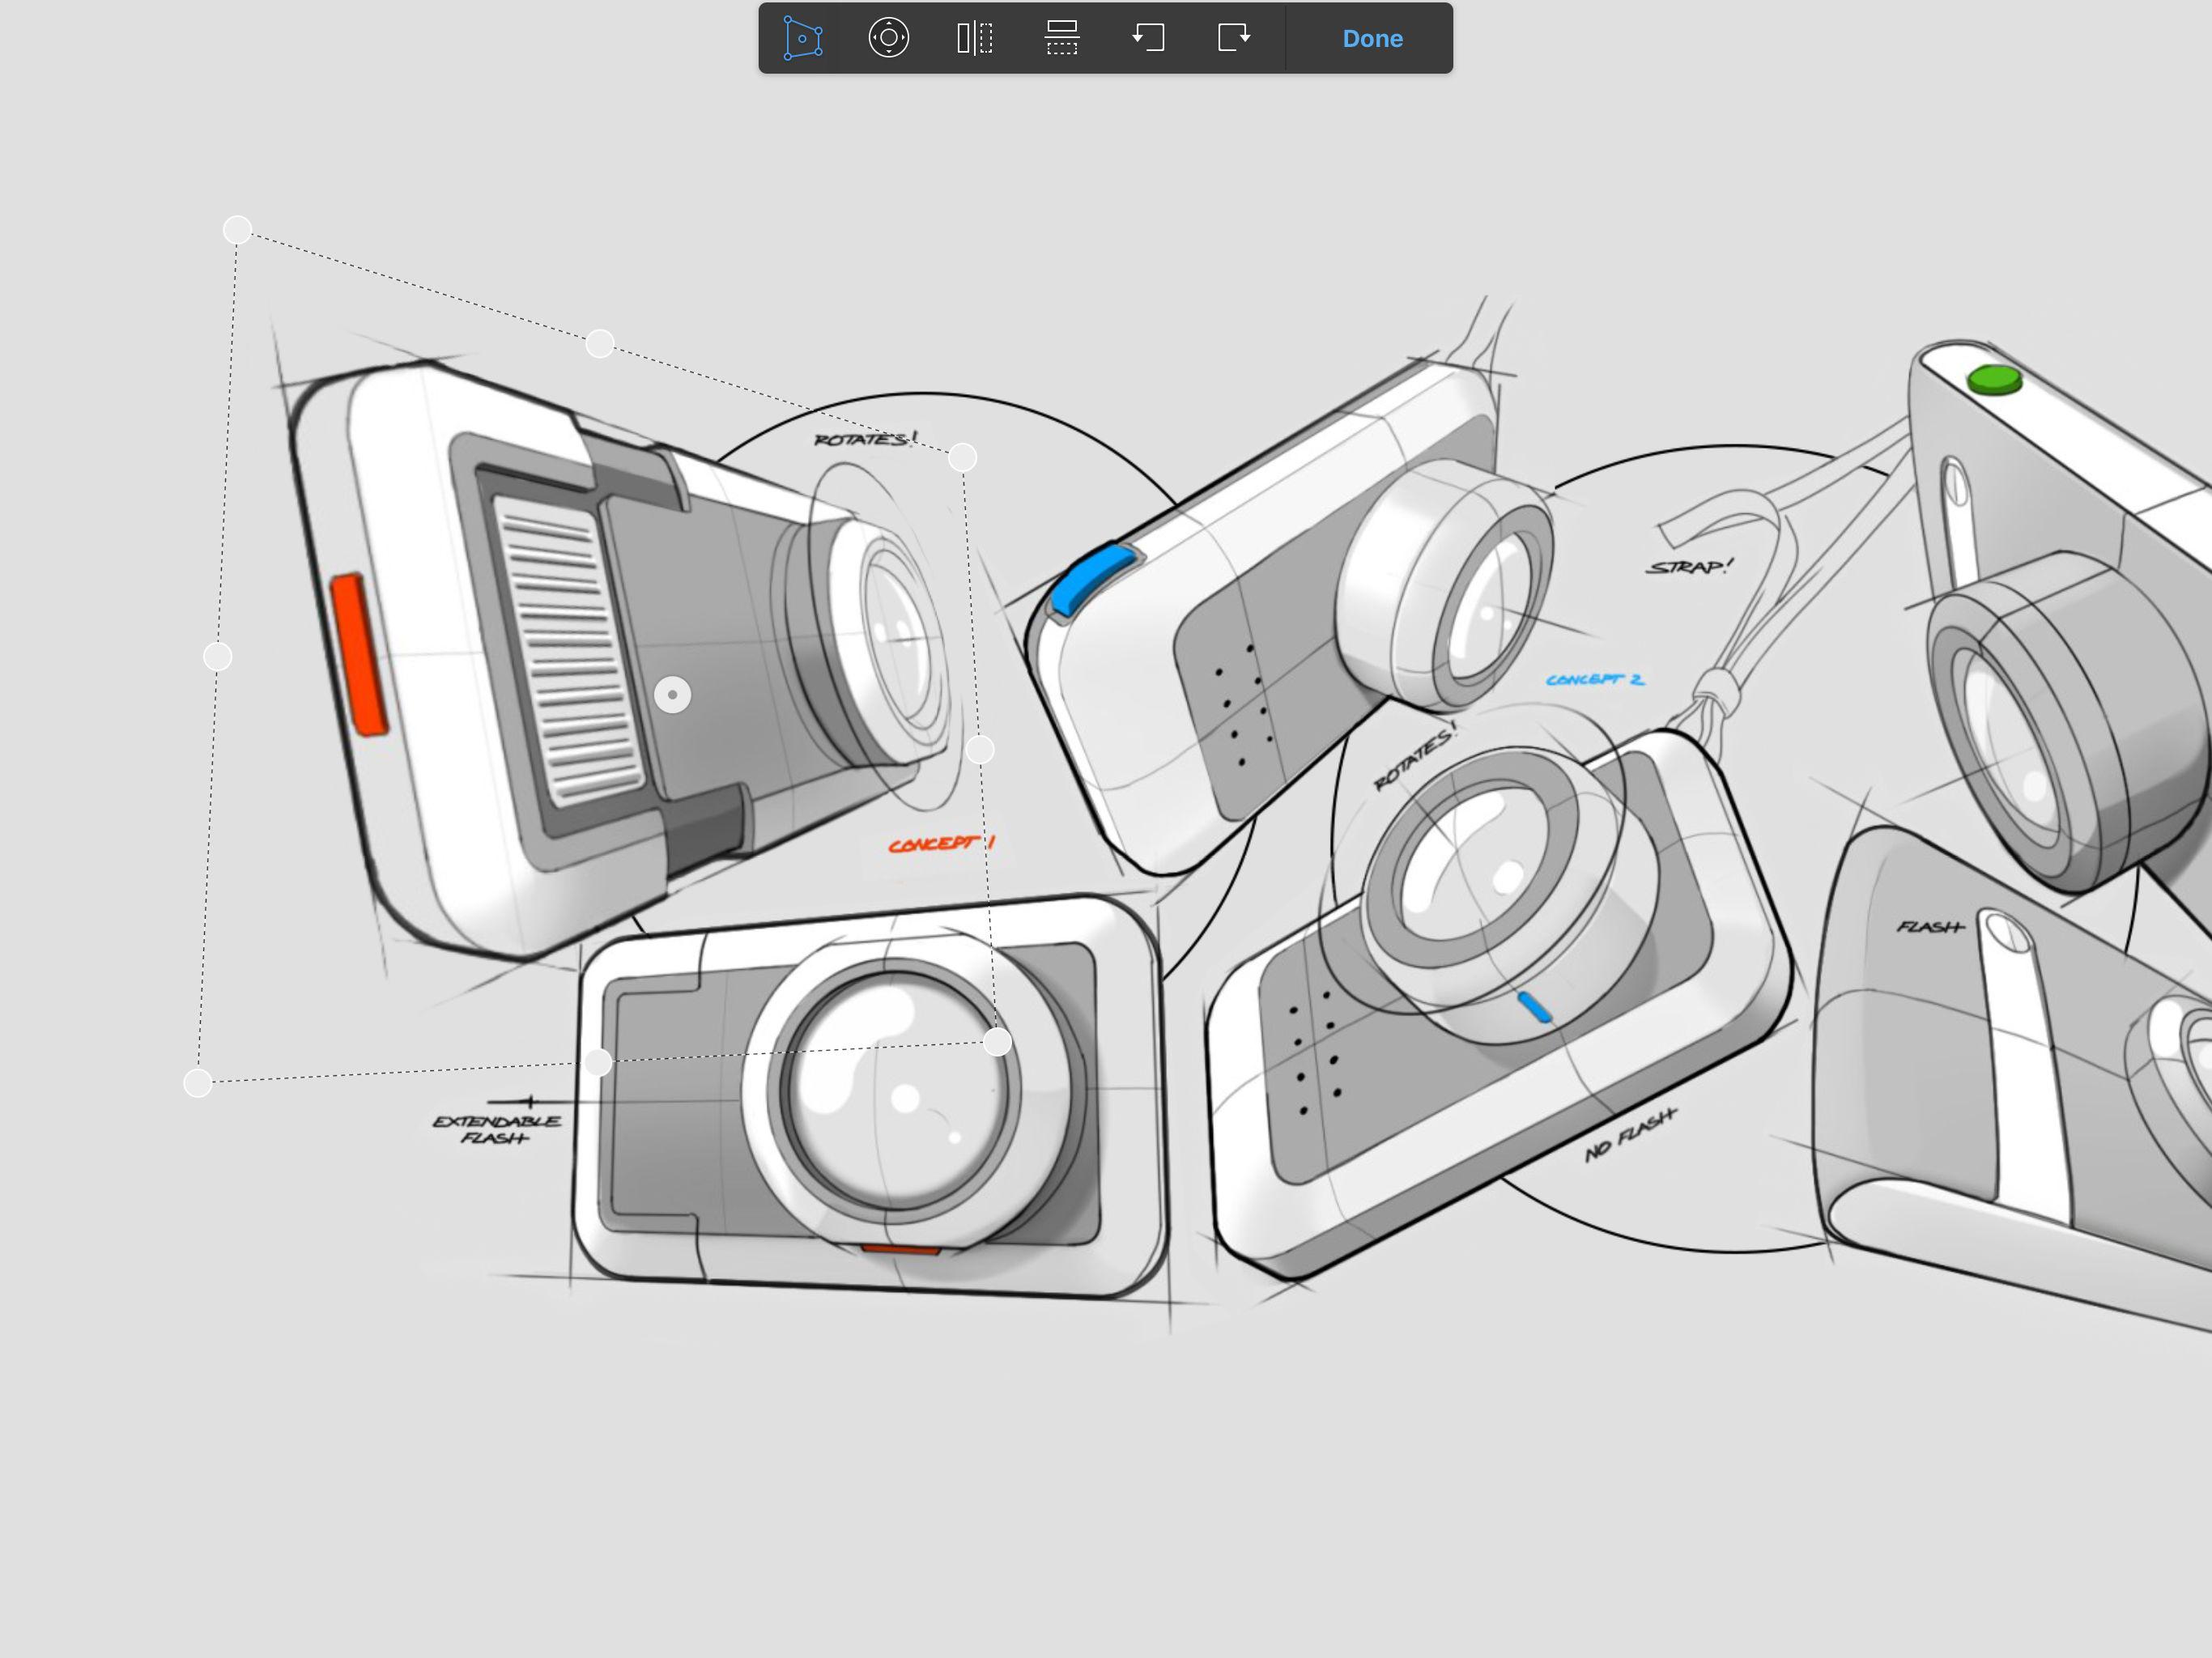 Autodesk SketchBook App - 3